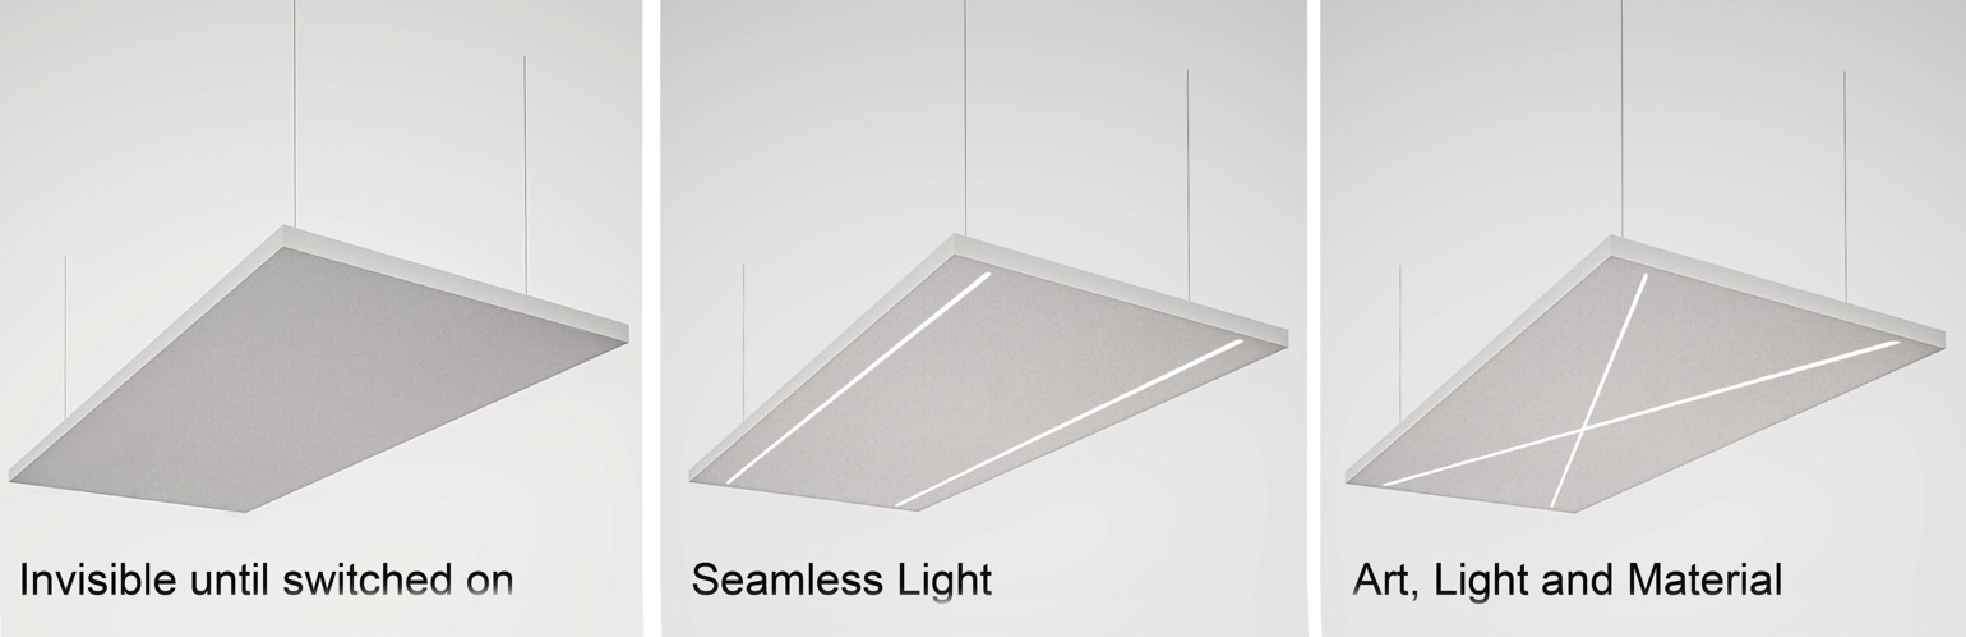 Led Light Coves And Lighting Profiles Vcut